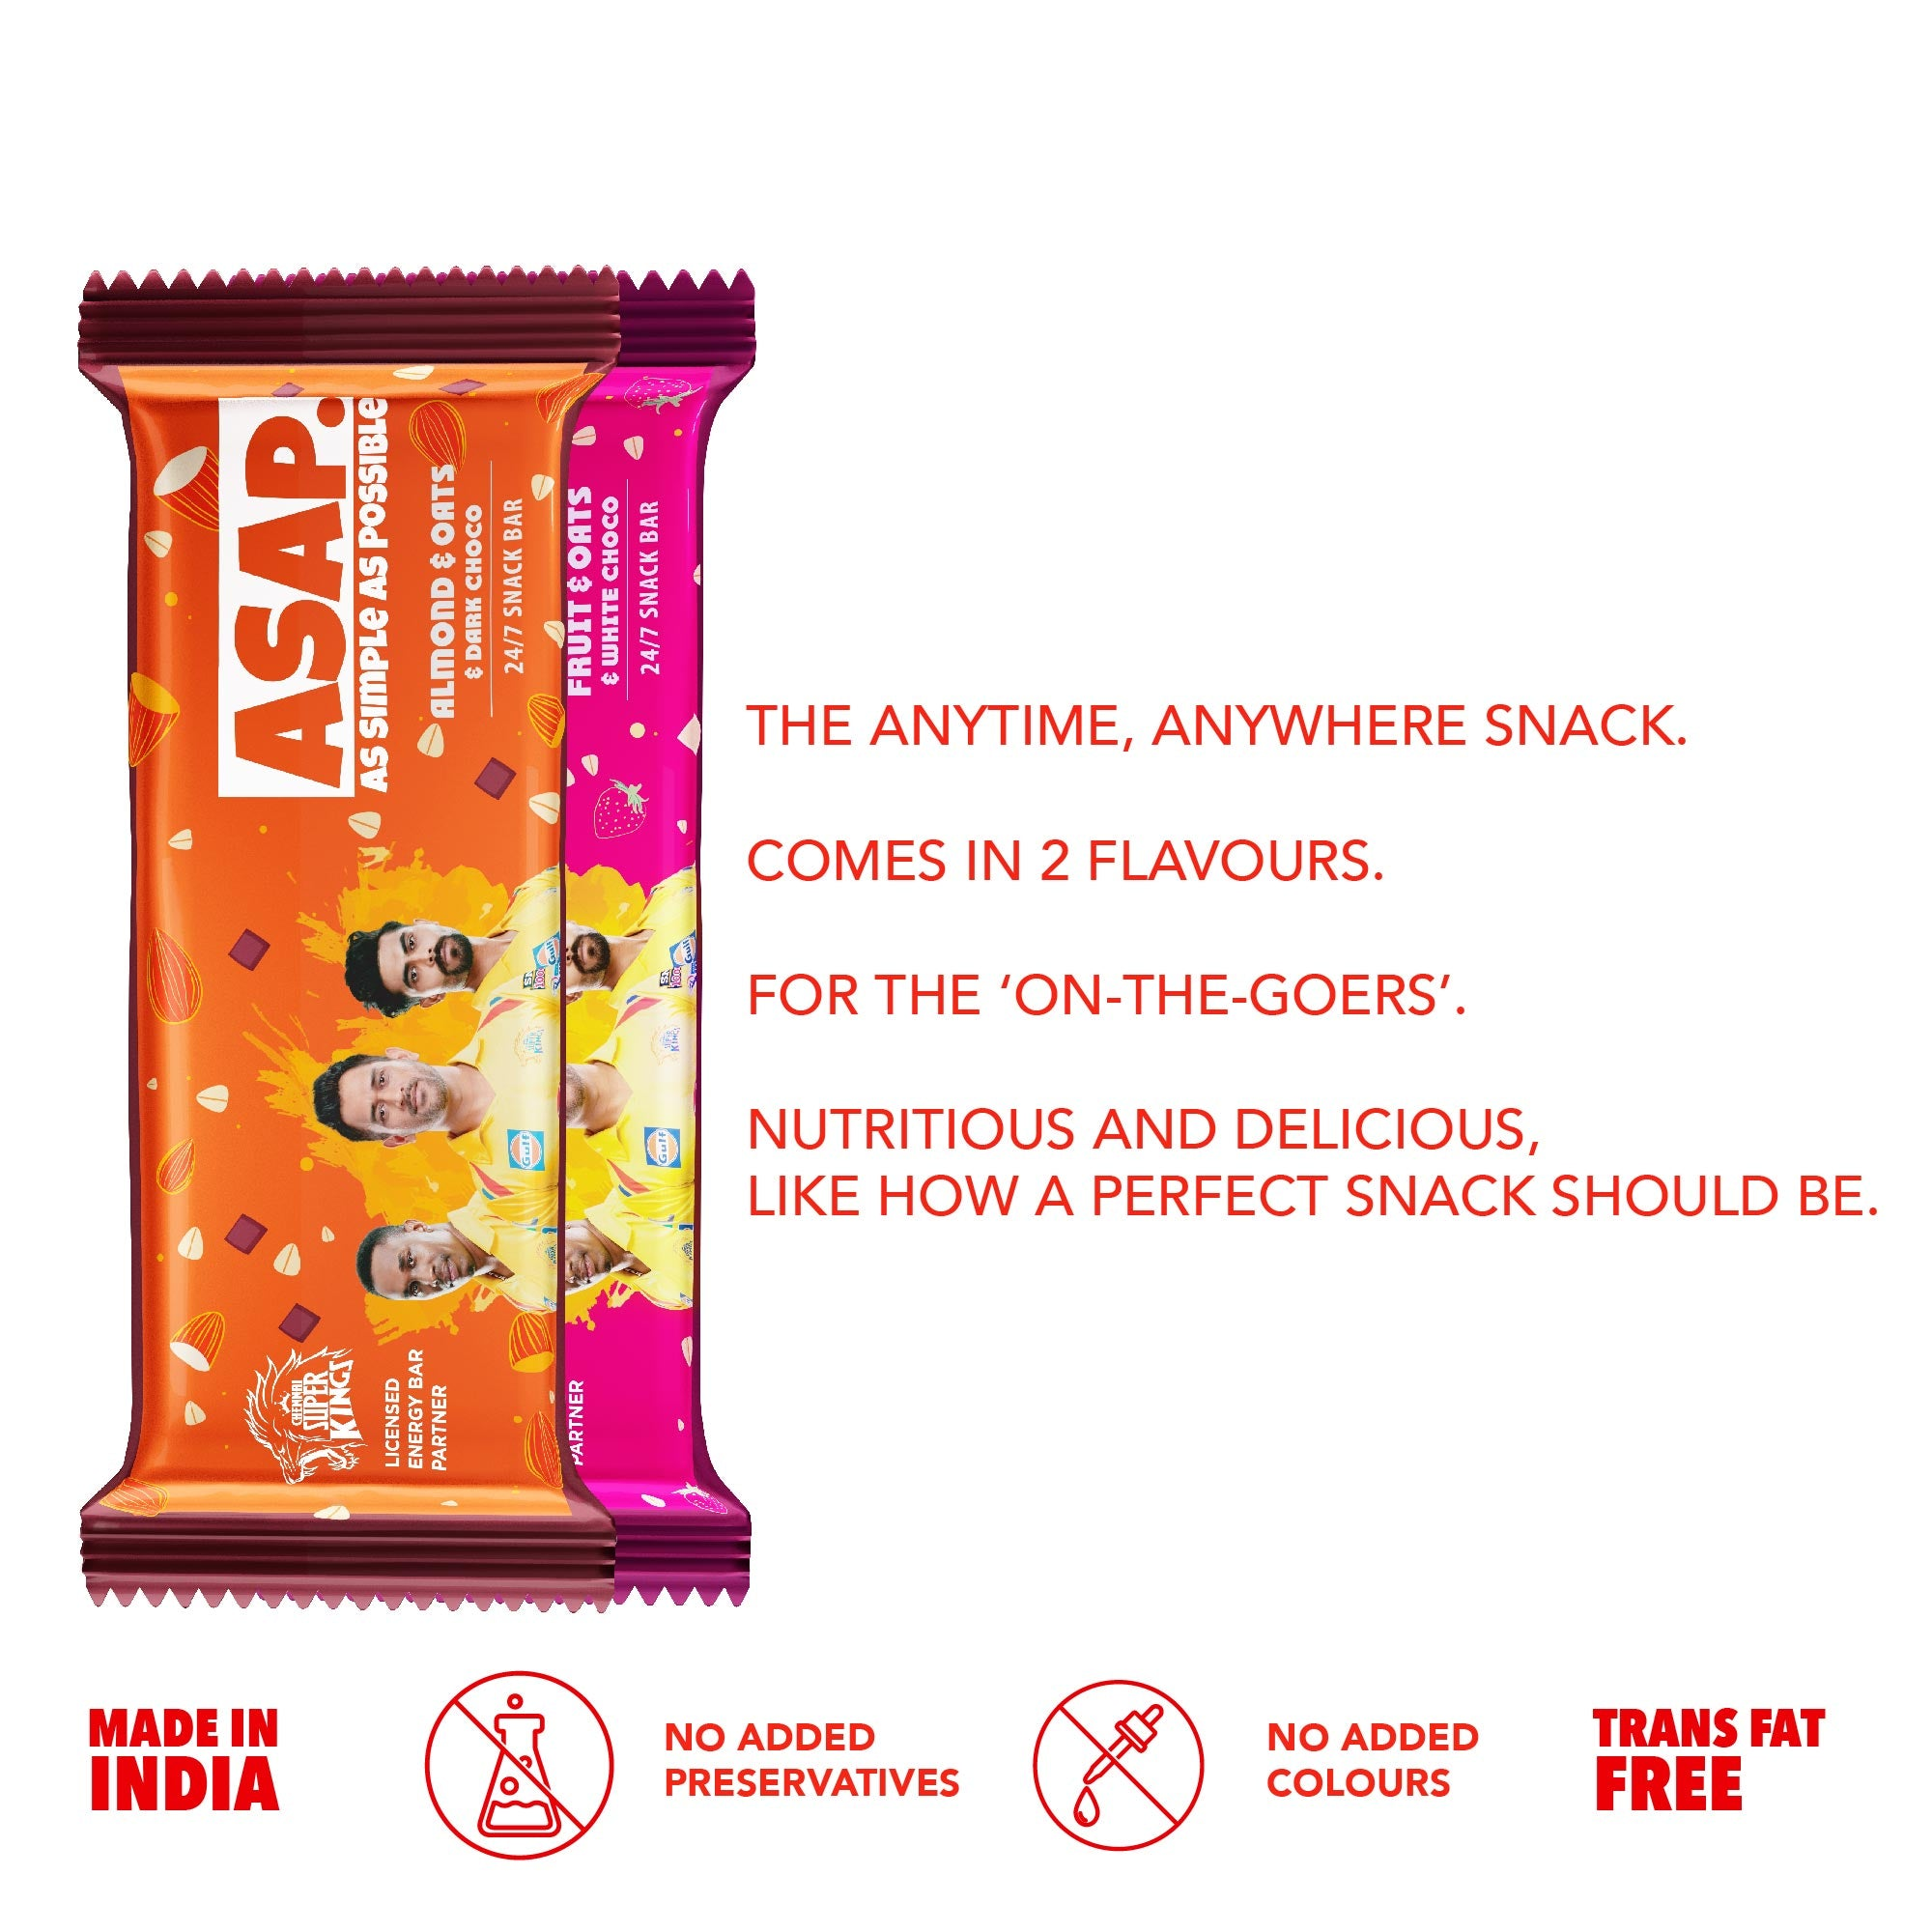 ASAP Festive pack of 12 snack bars - limited time special edition CSK packs